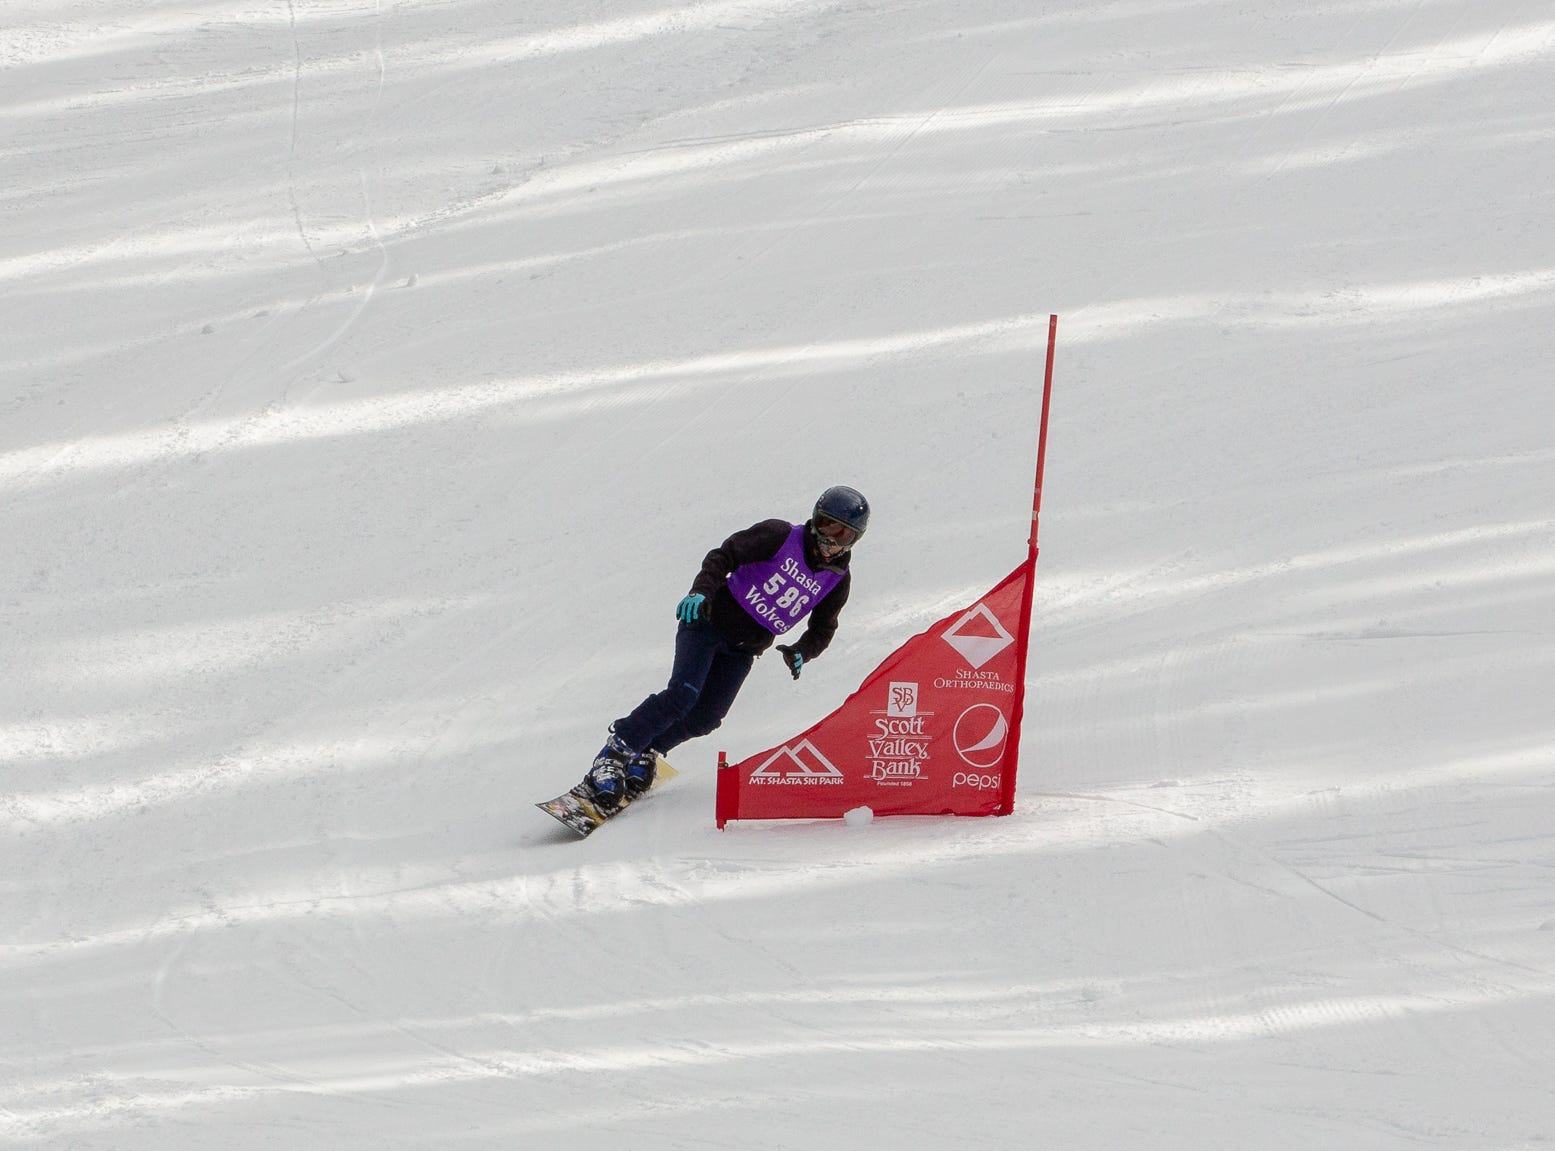 Sage Will of Shasta competes in the second high school snowboard meet of 2019 on Monday, Jan. 21 at Mt. Shasta Ski Park.